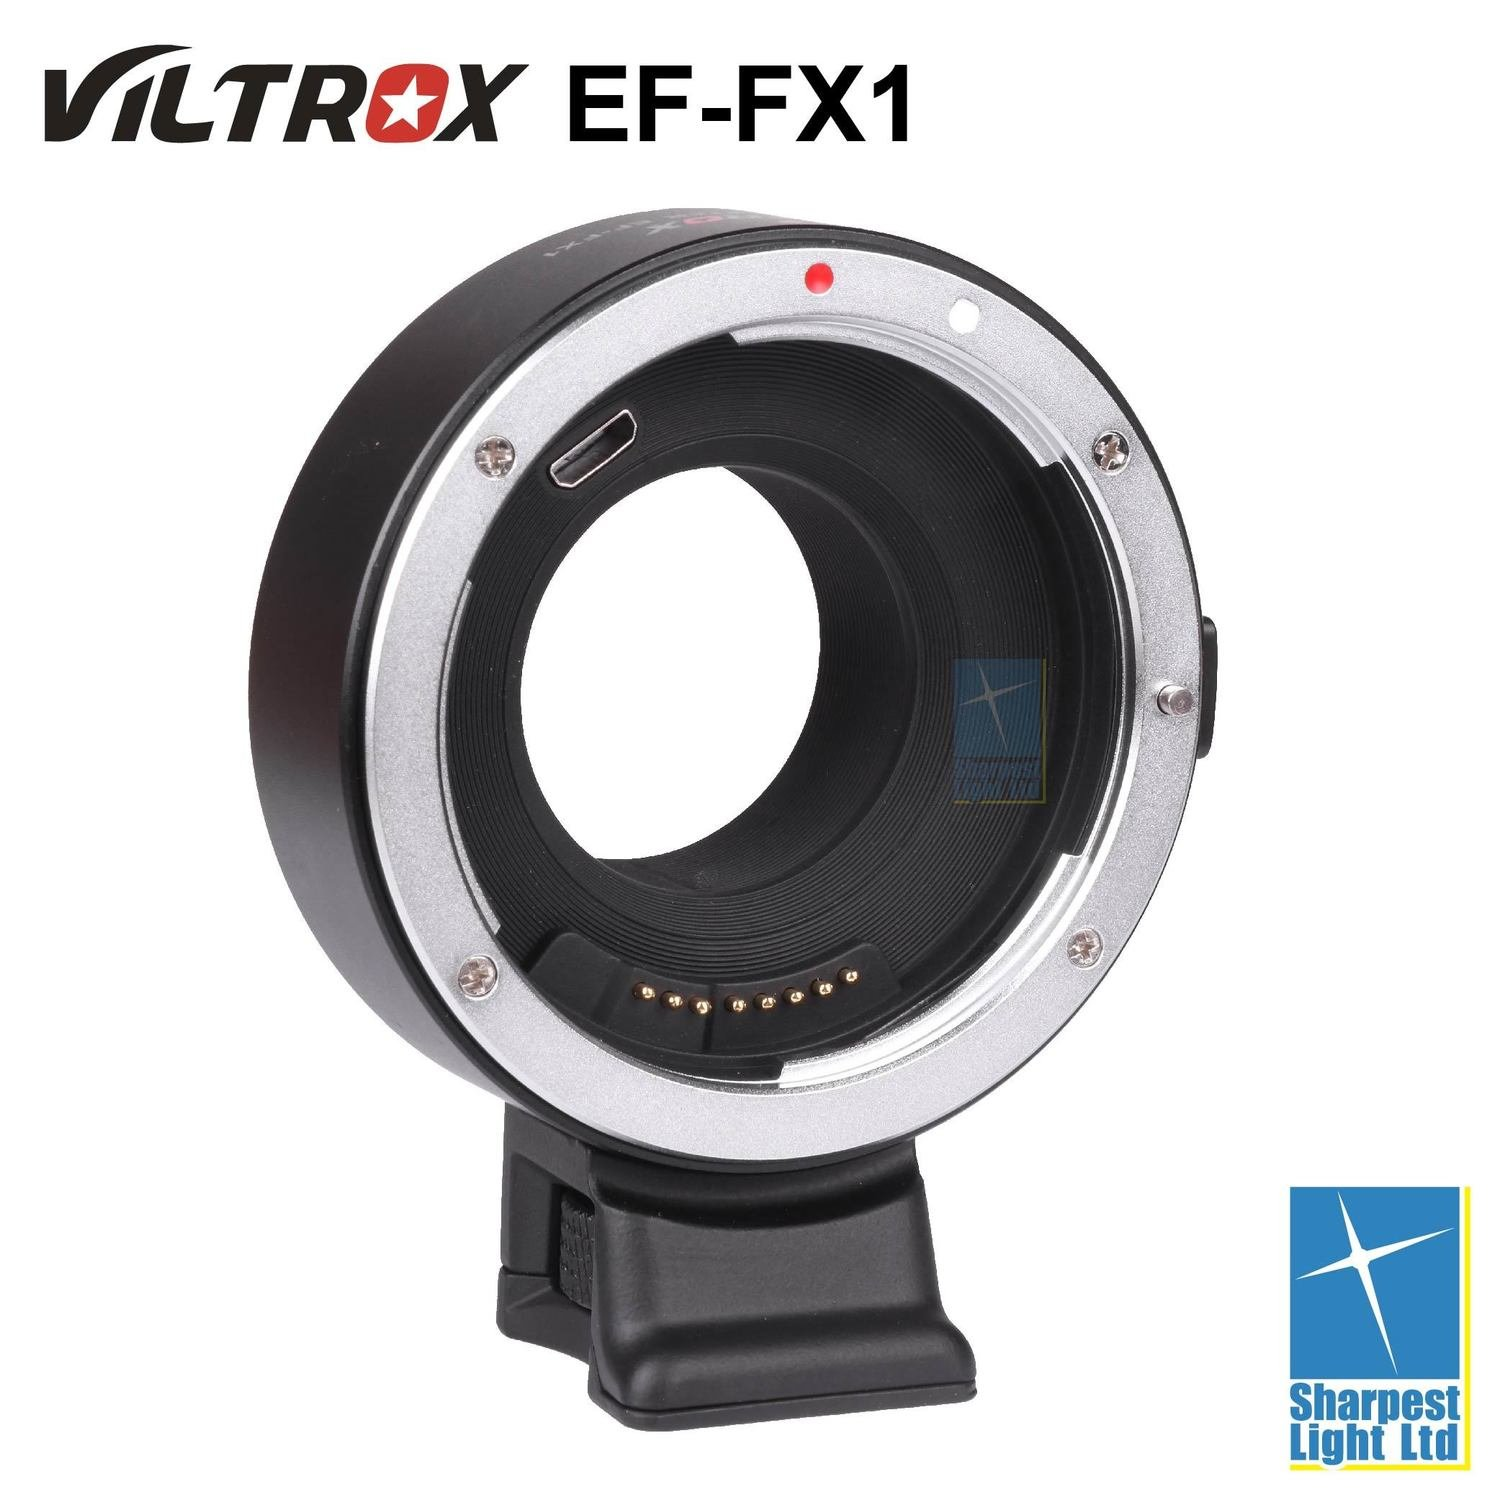 Viltrox EF-FX1 Electronic Adapter for Canon Lens to Fuji X Mount Camera